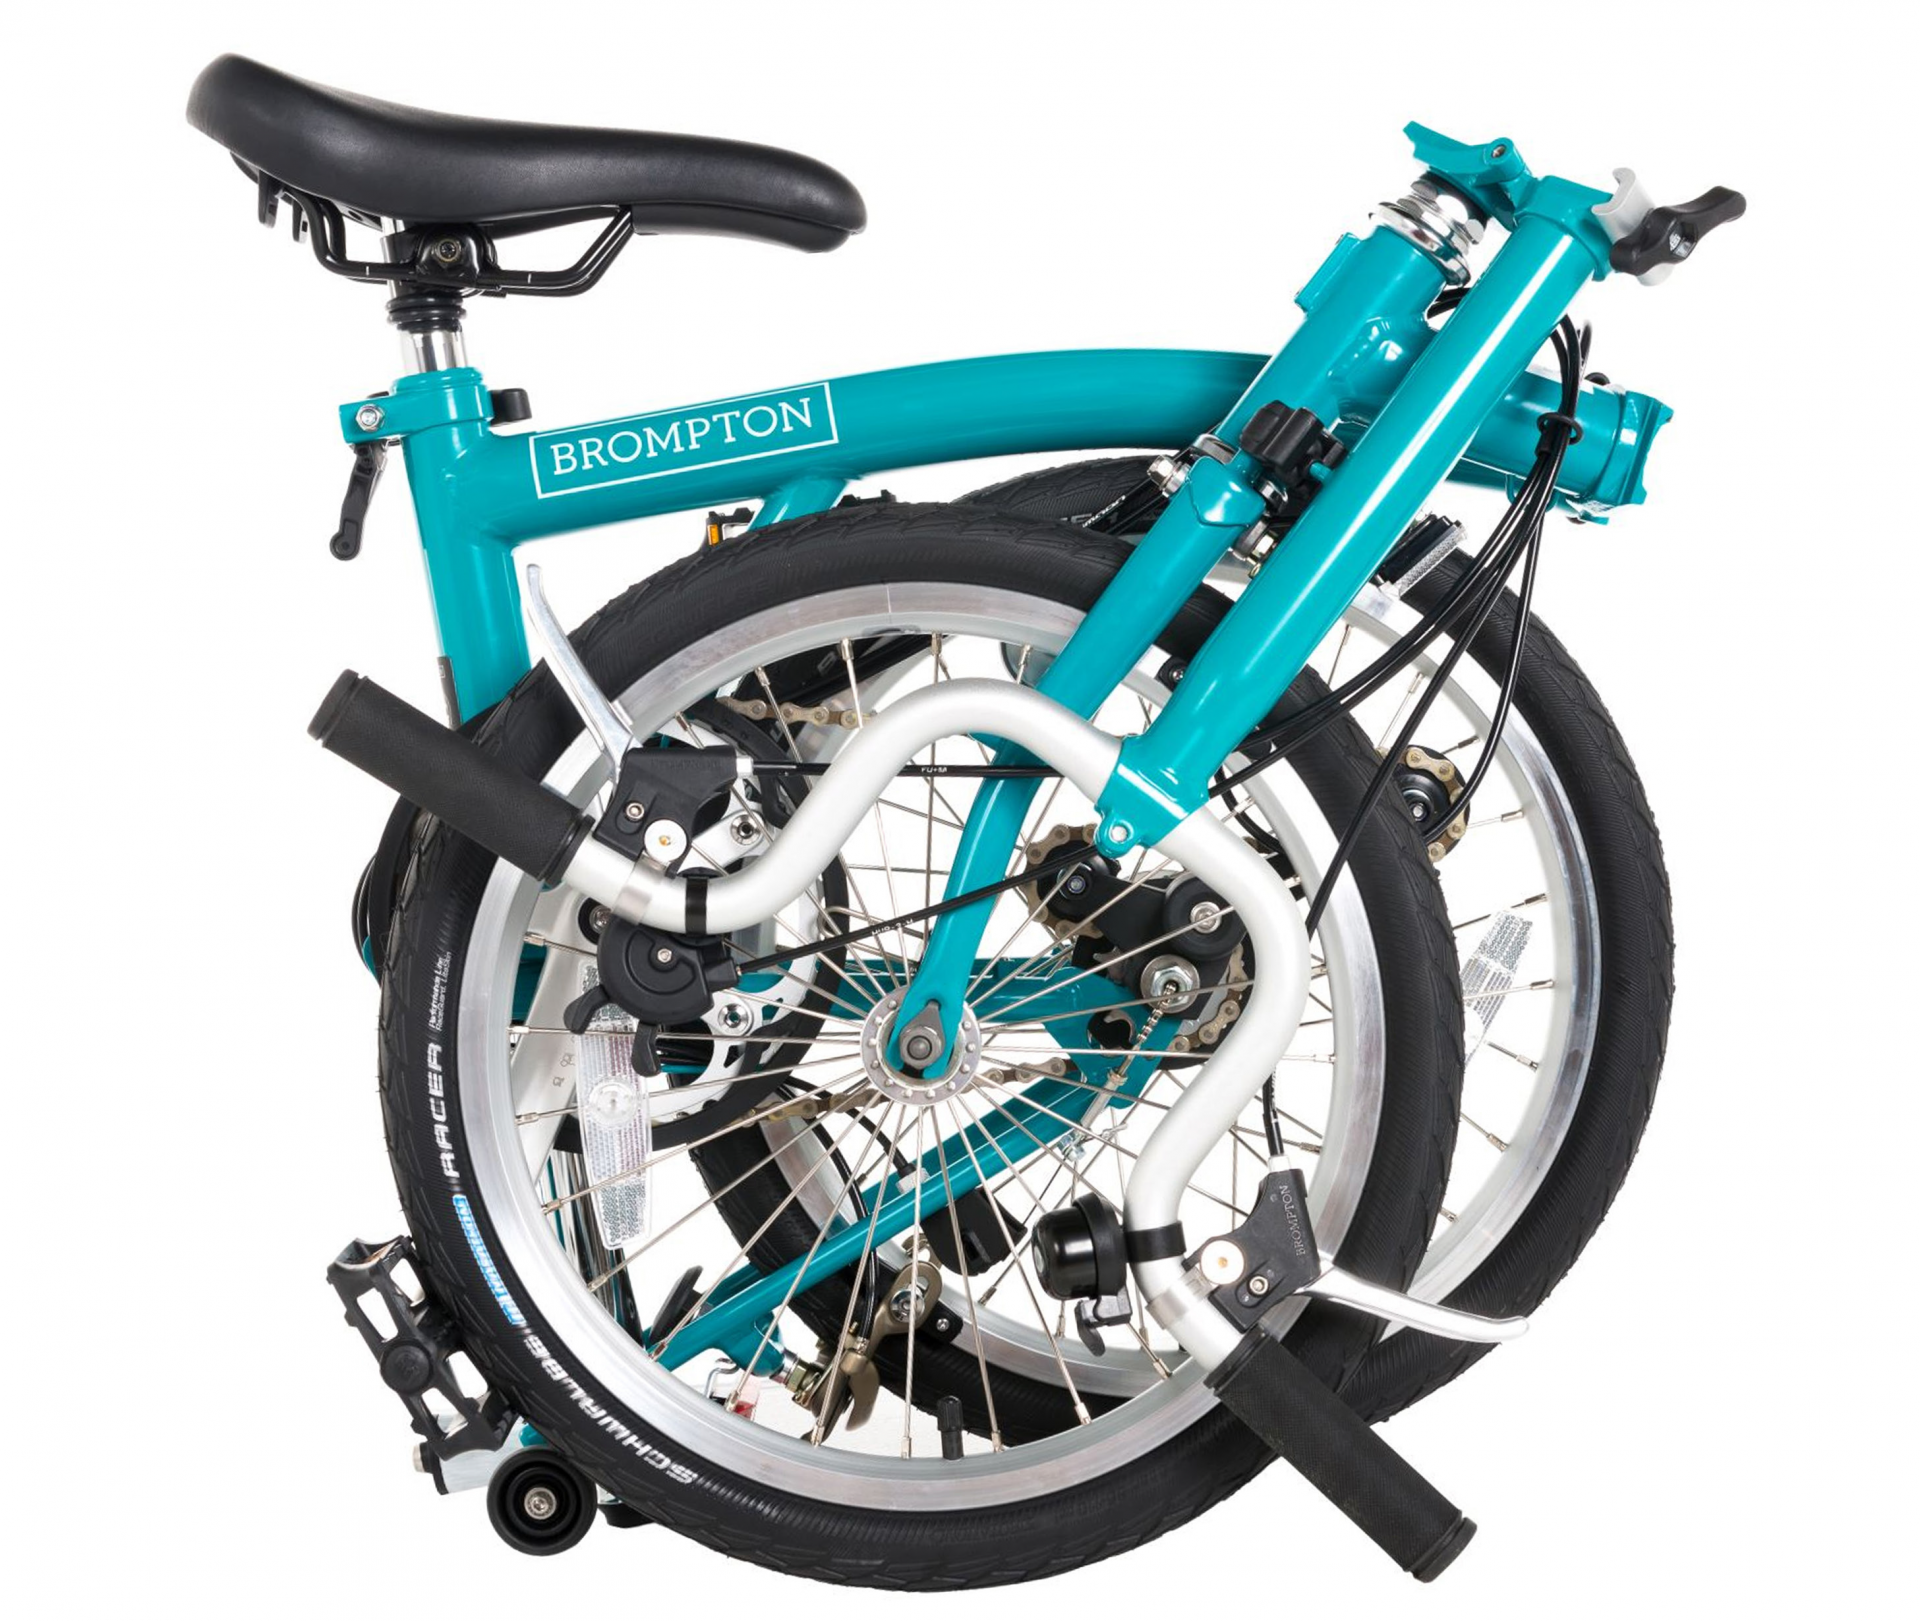 Brompton - award-winning innovative folding-frame design